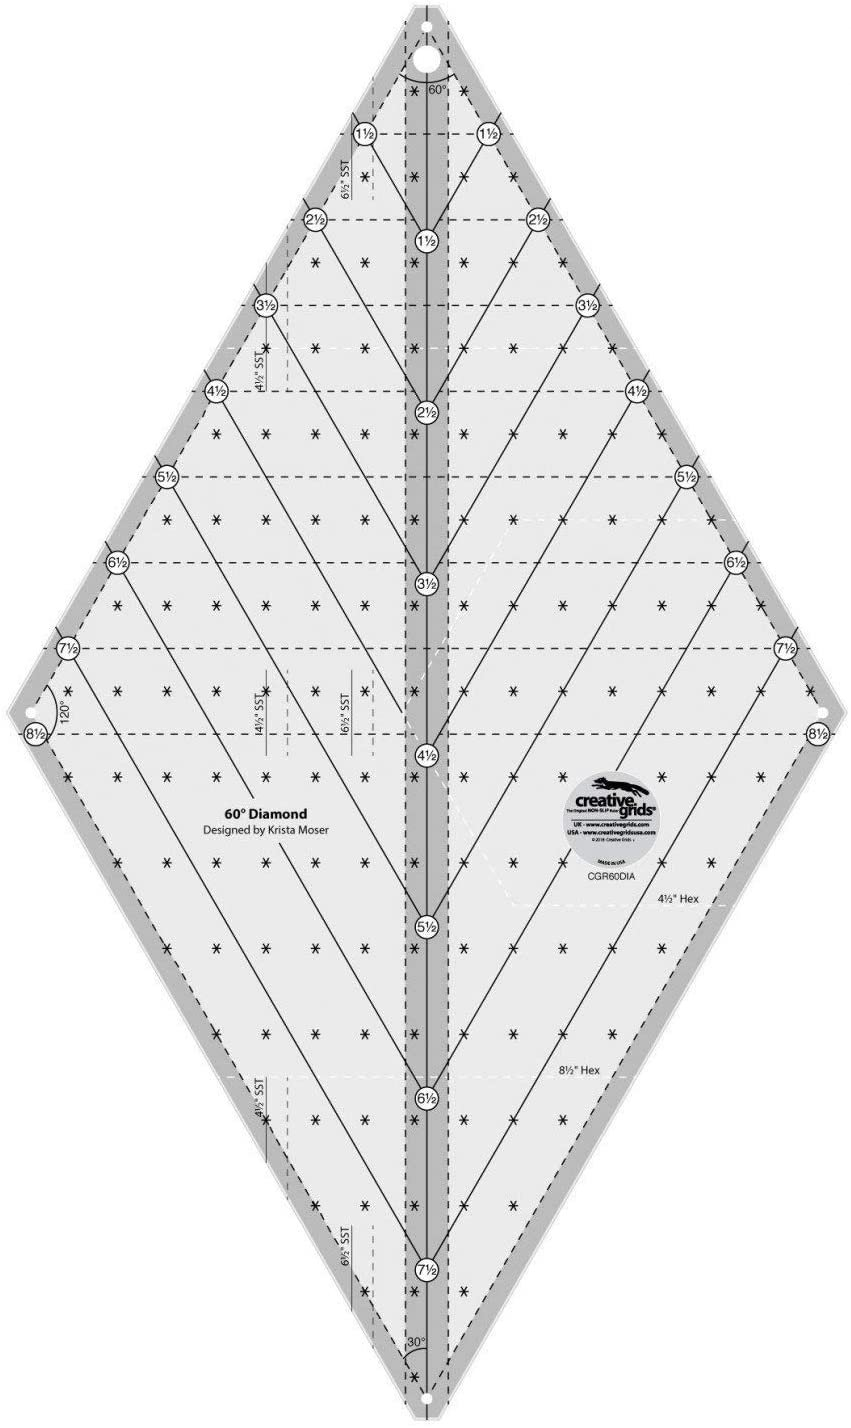 Creative Grids 60 Degree Diamond Ruler 16 1/2